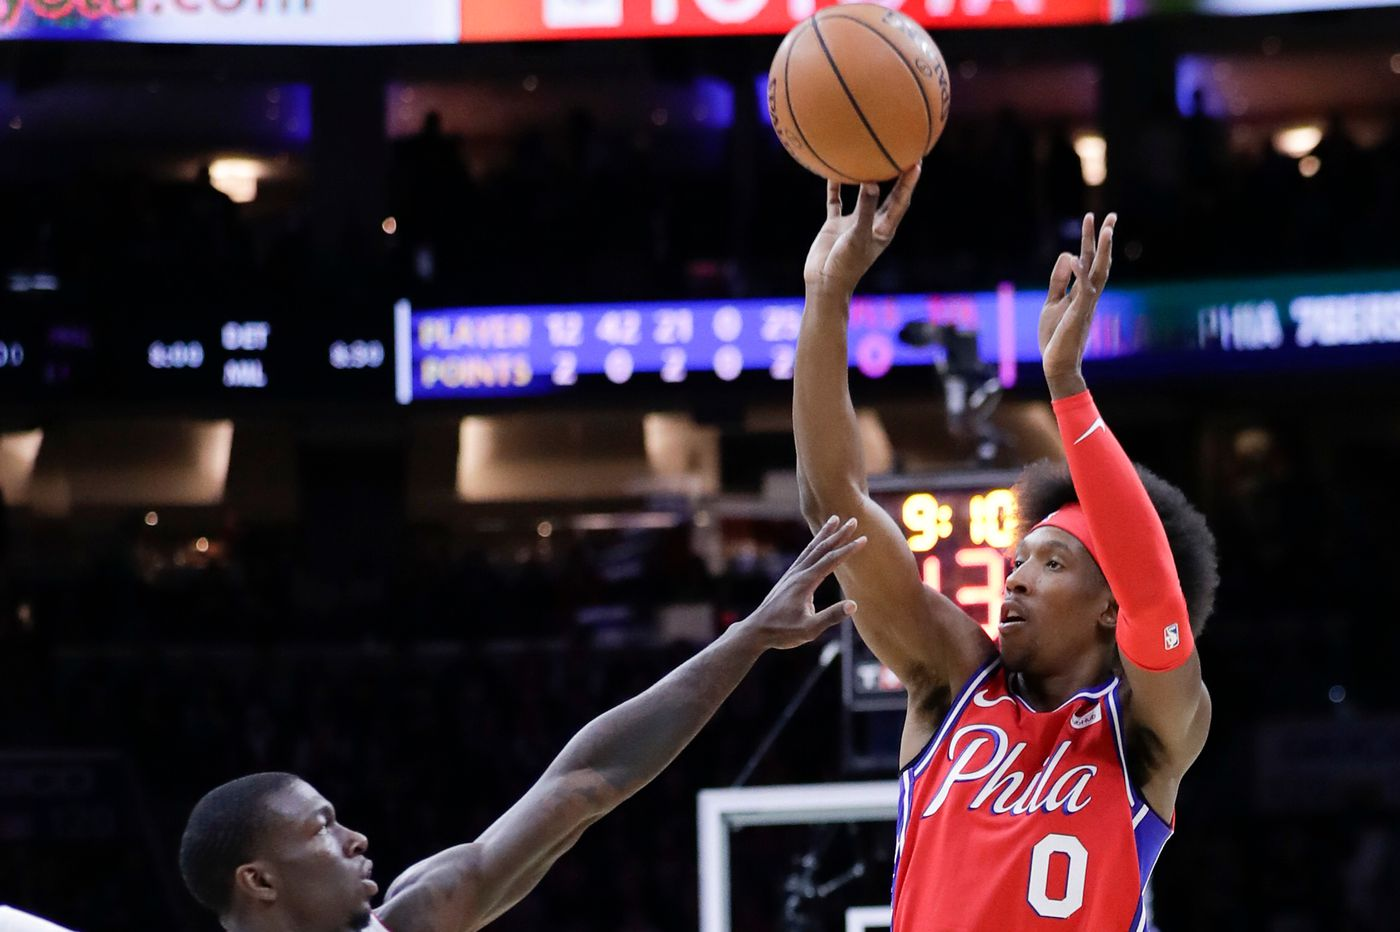 Sixers notes: Josh Richardson excited to be back in the lineup against Denver